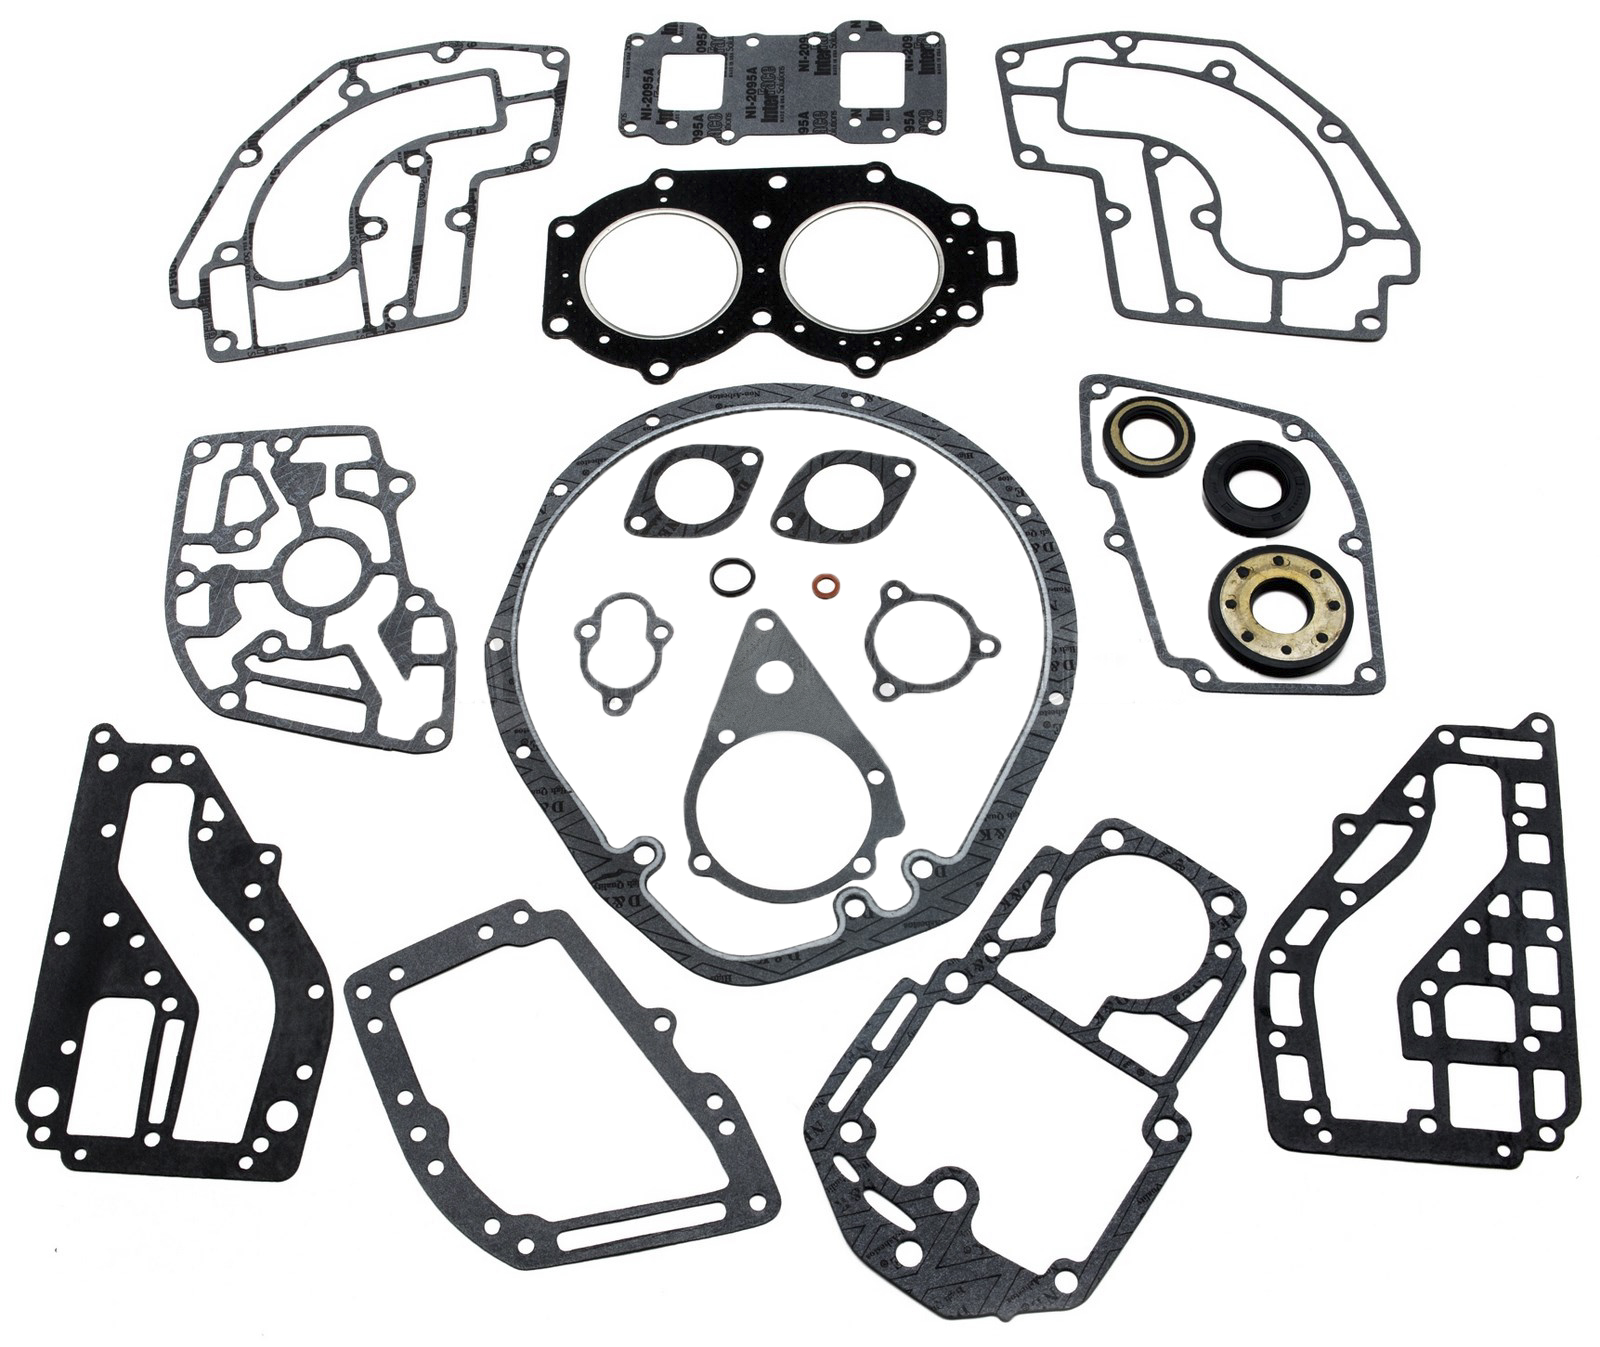 Details about Yamaha 500 Wave Runner Jammer Complete Engine Rebuild Gasket  Seal Kit